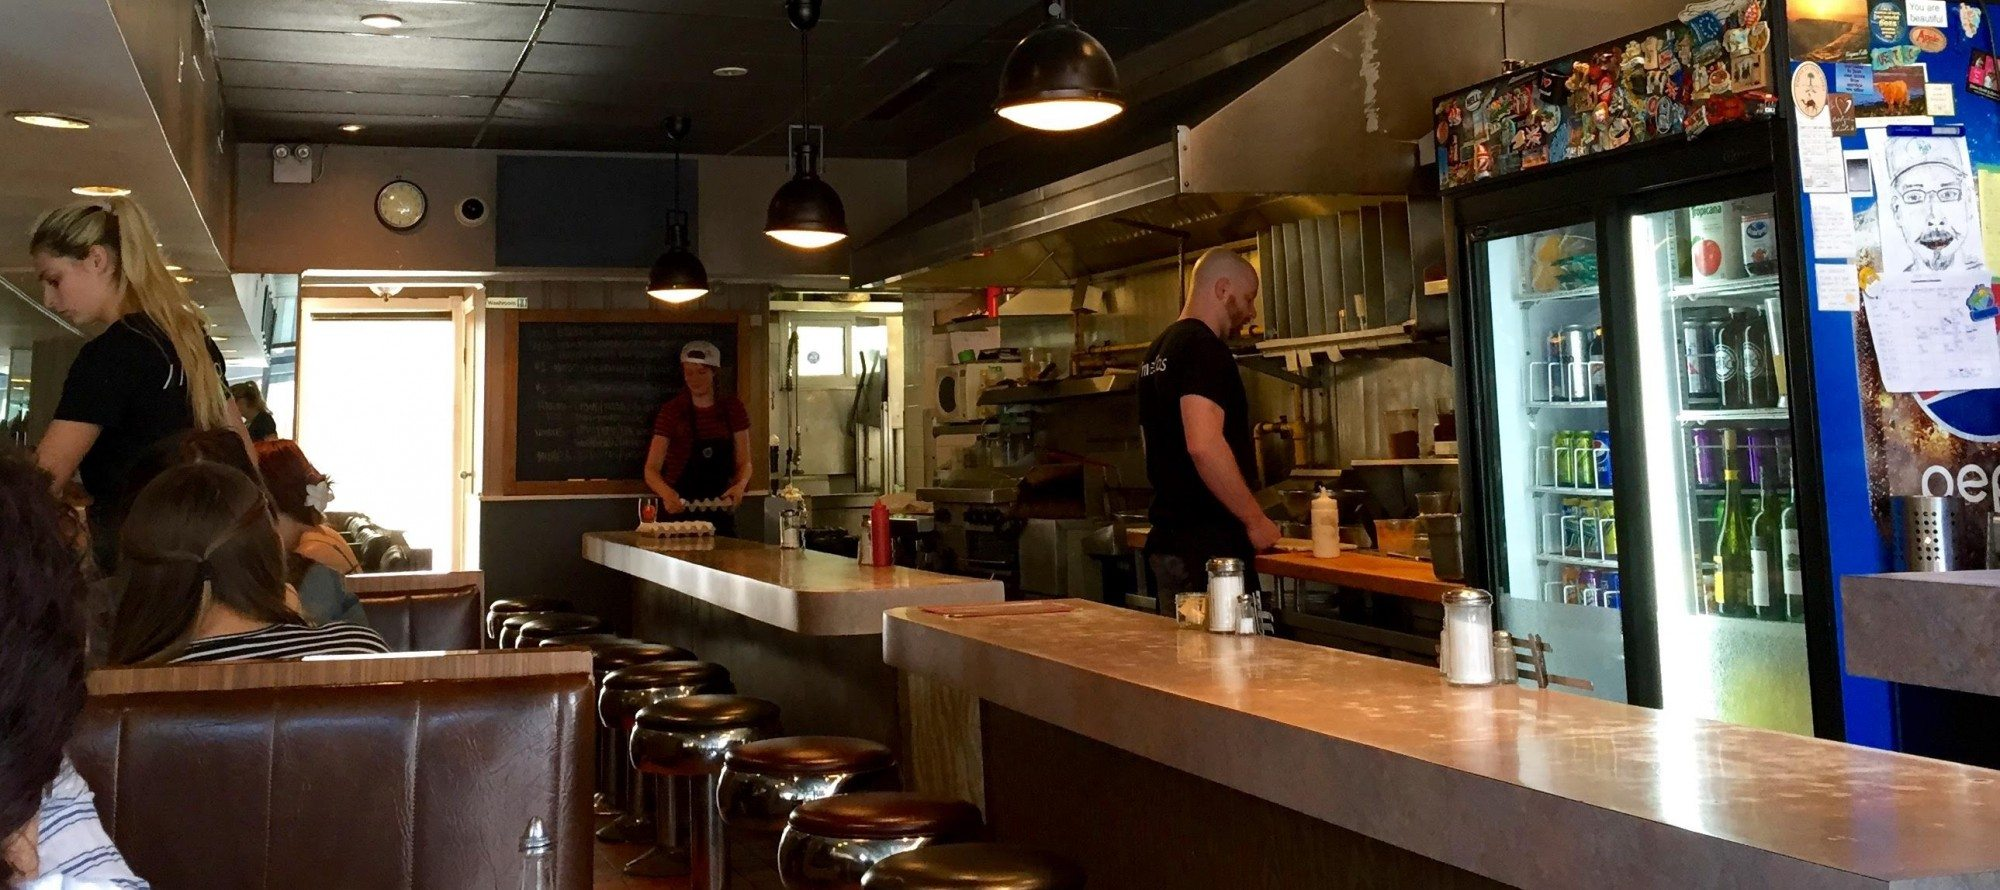 DESBRISAY DINES: Lunch at Mellos — still the same, but with better food